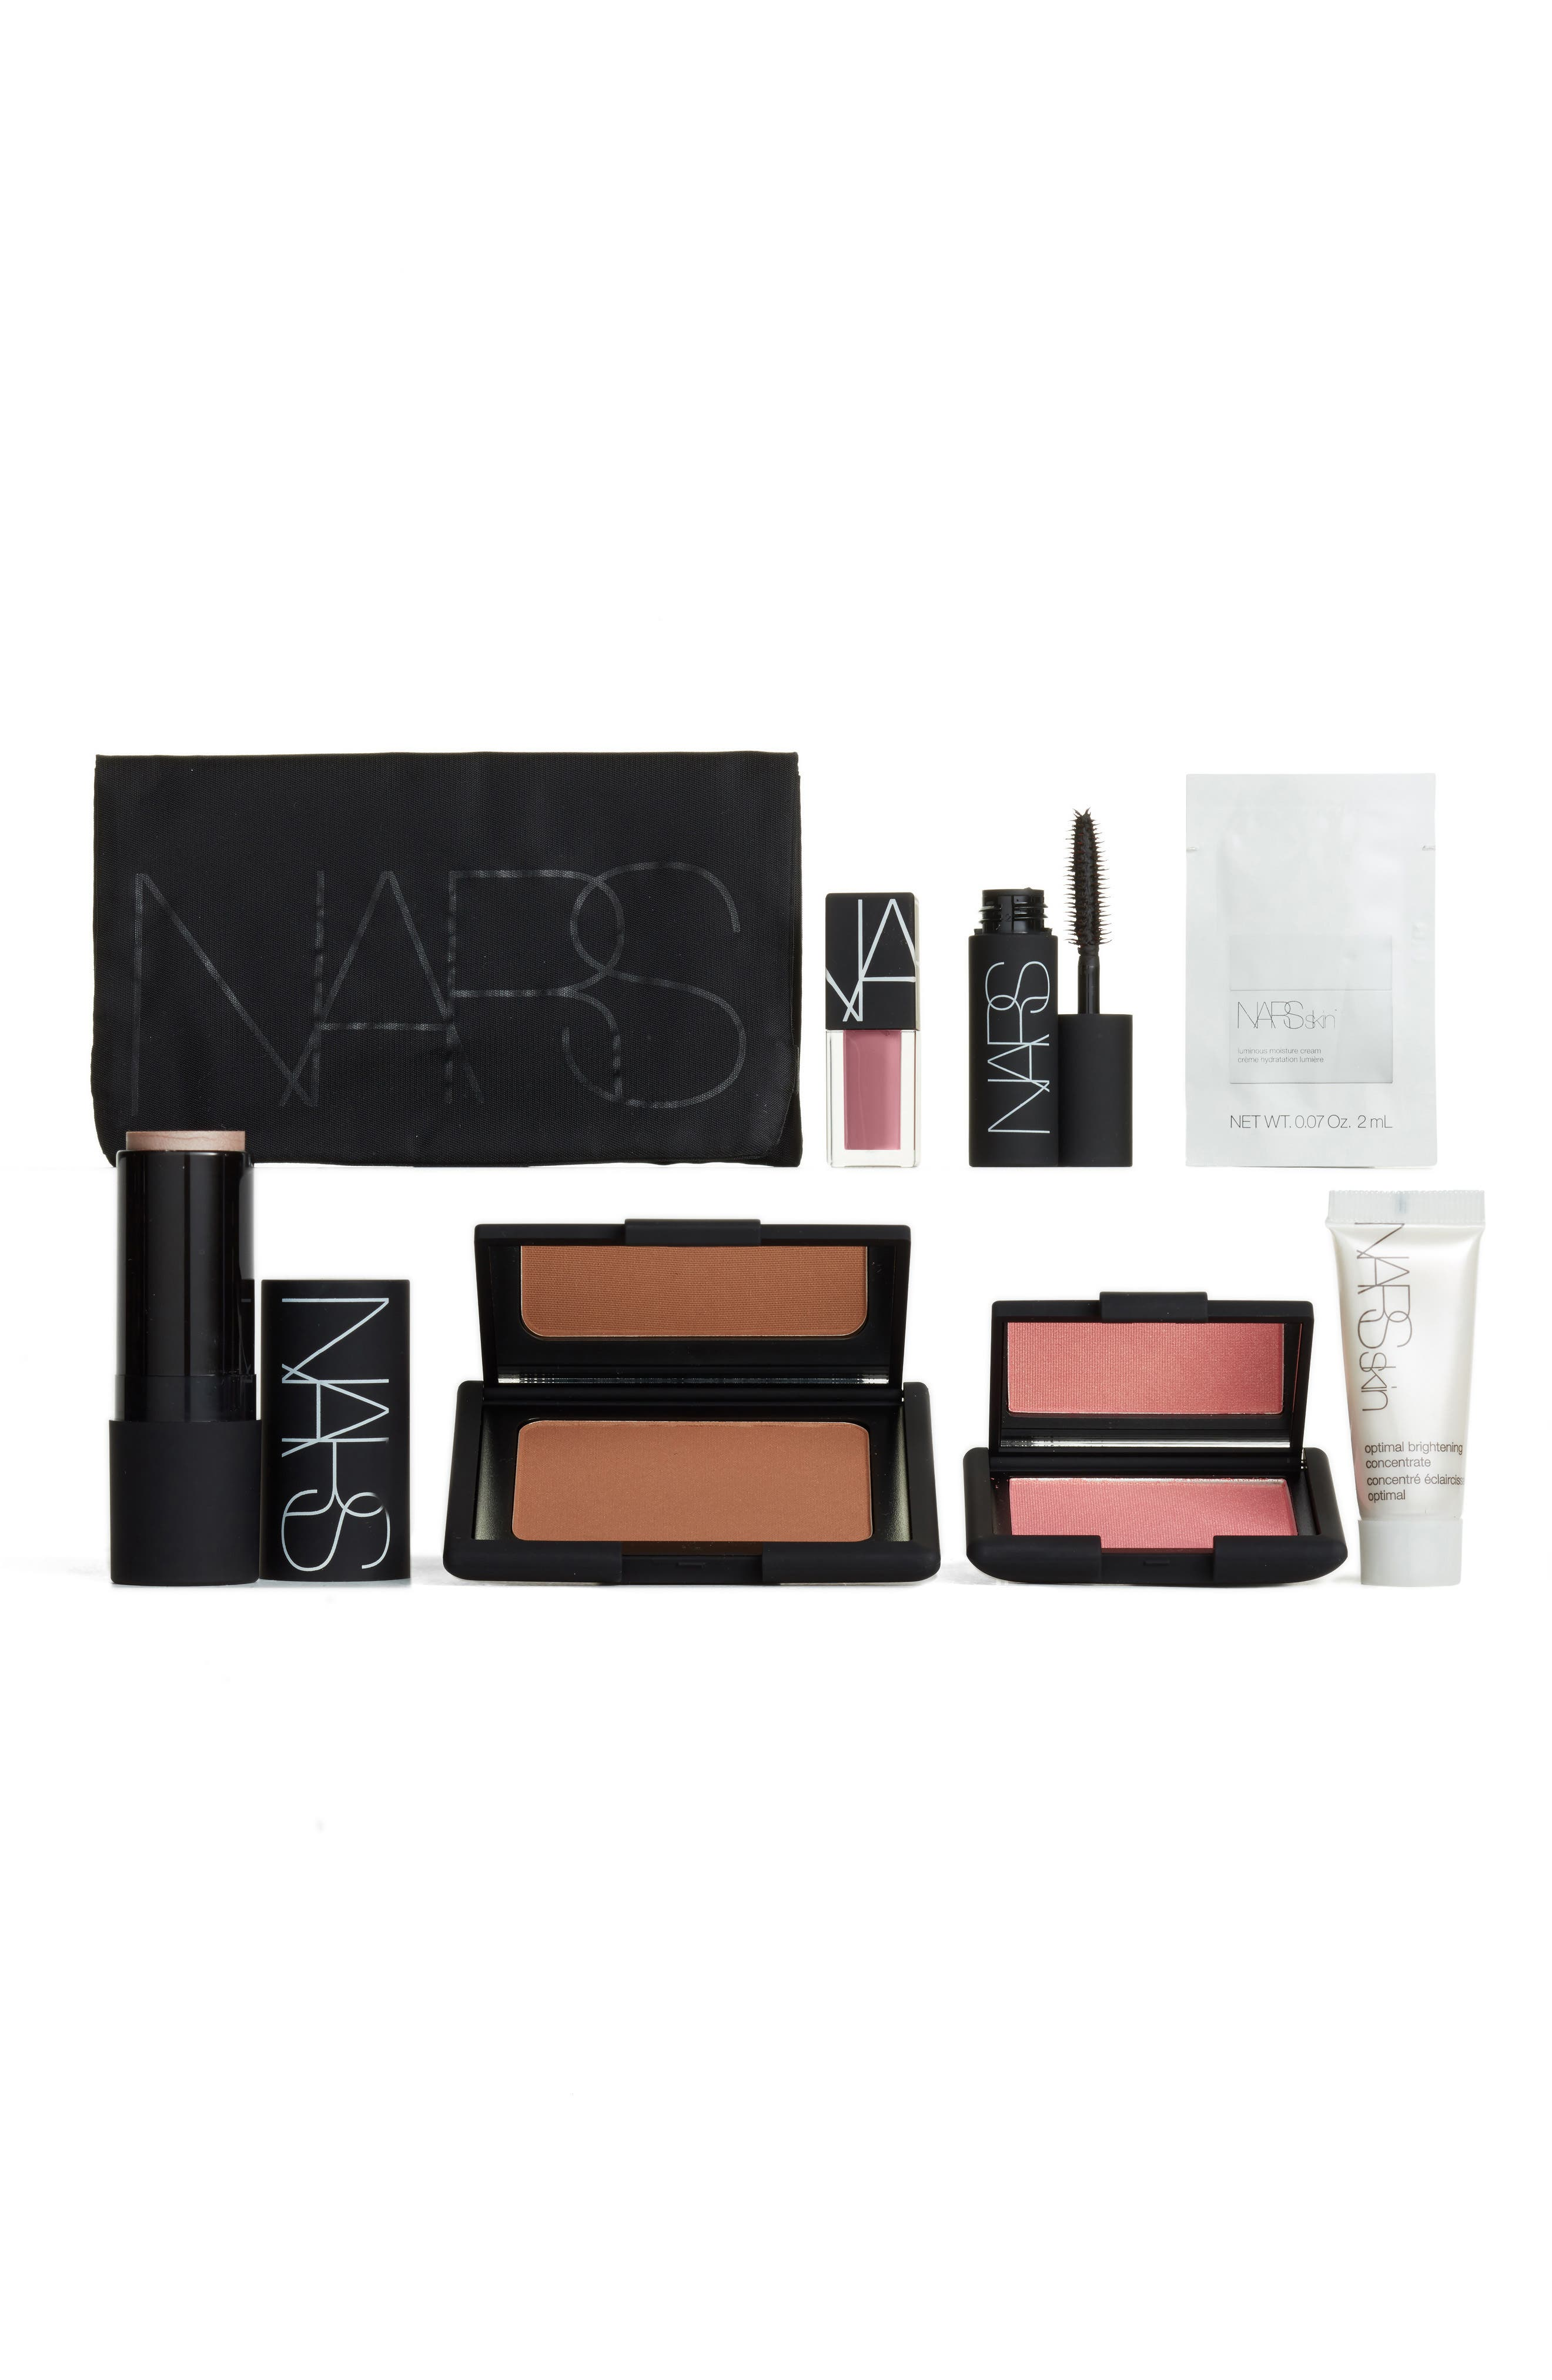 NARS Ultimate Makeup & Skin Care Collection (Nordstrom Online Exclusive) ($151 Value)